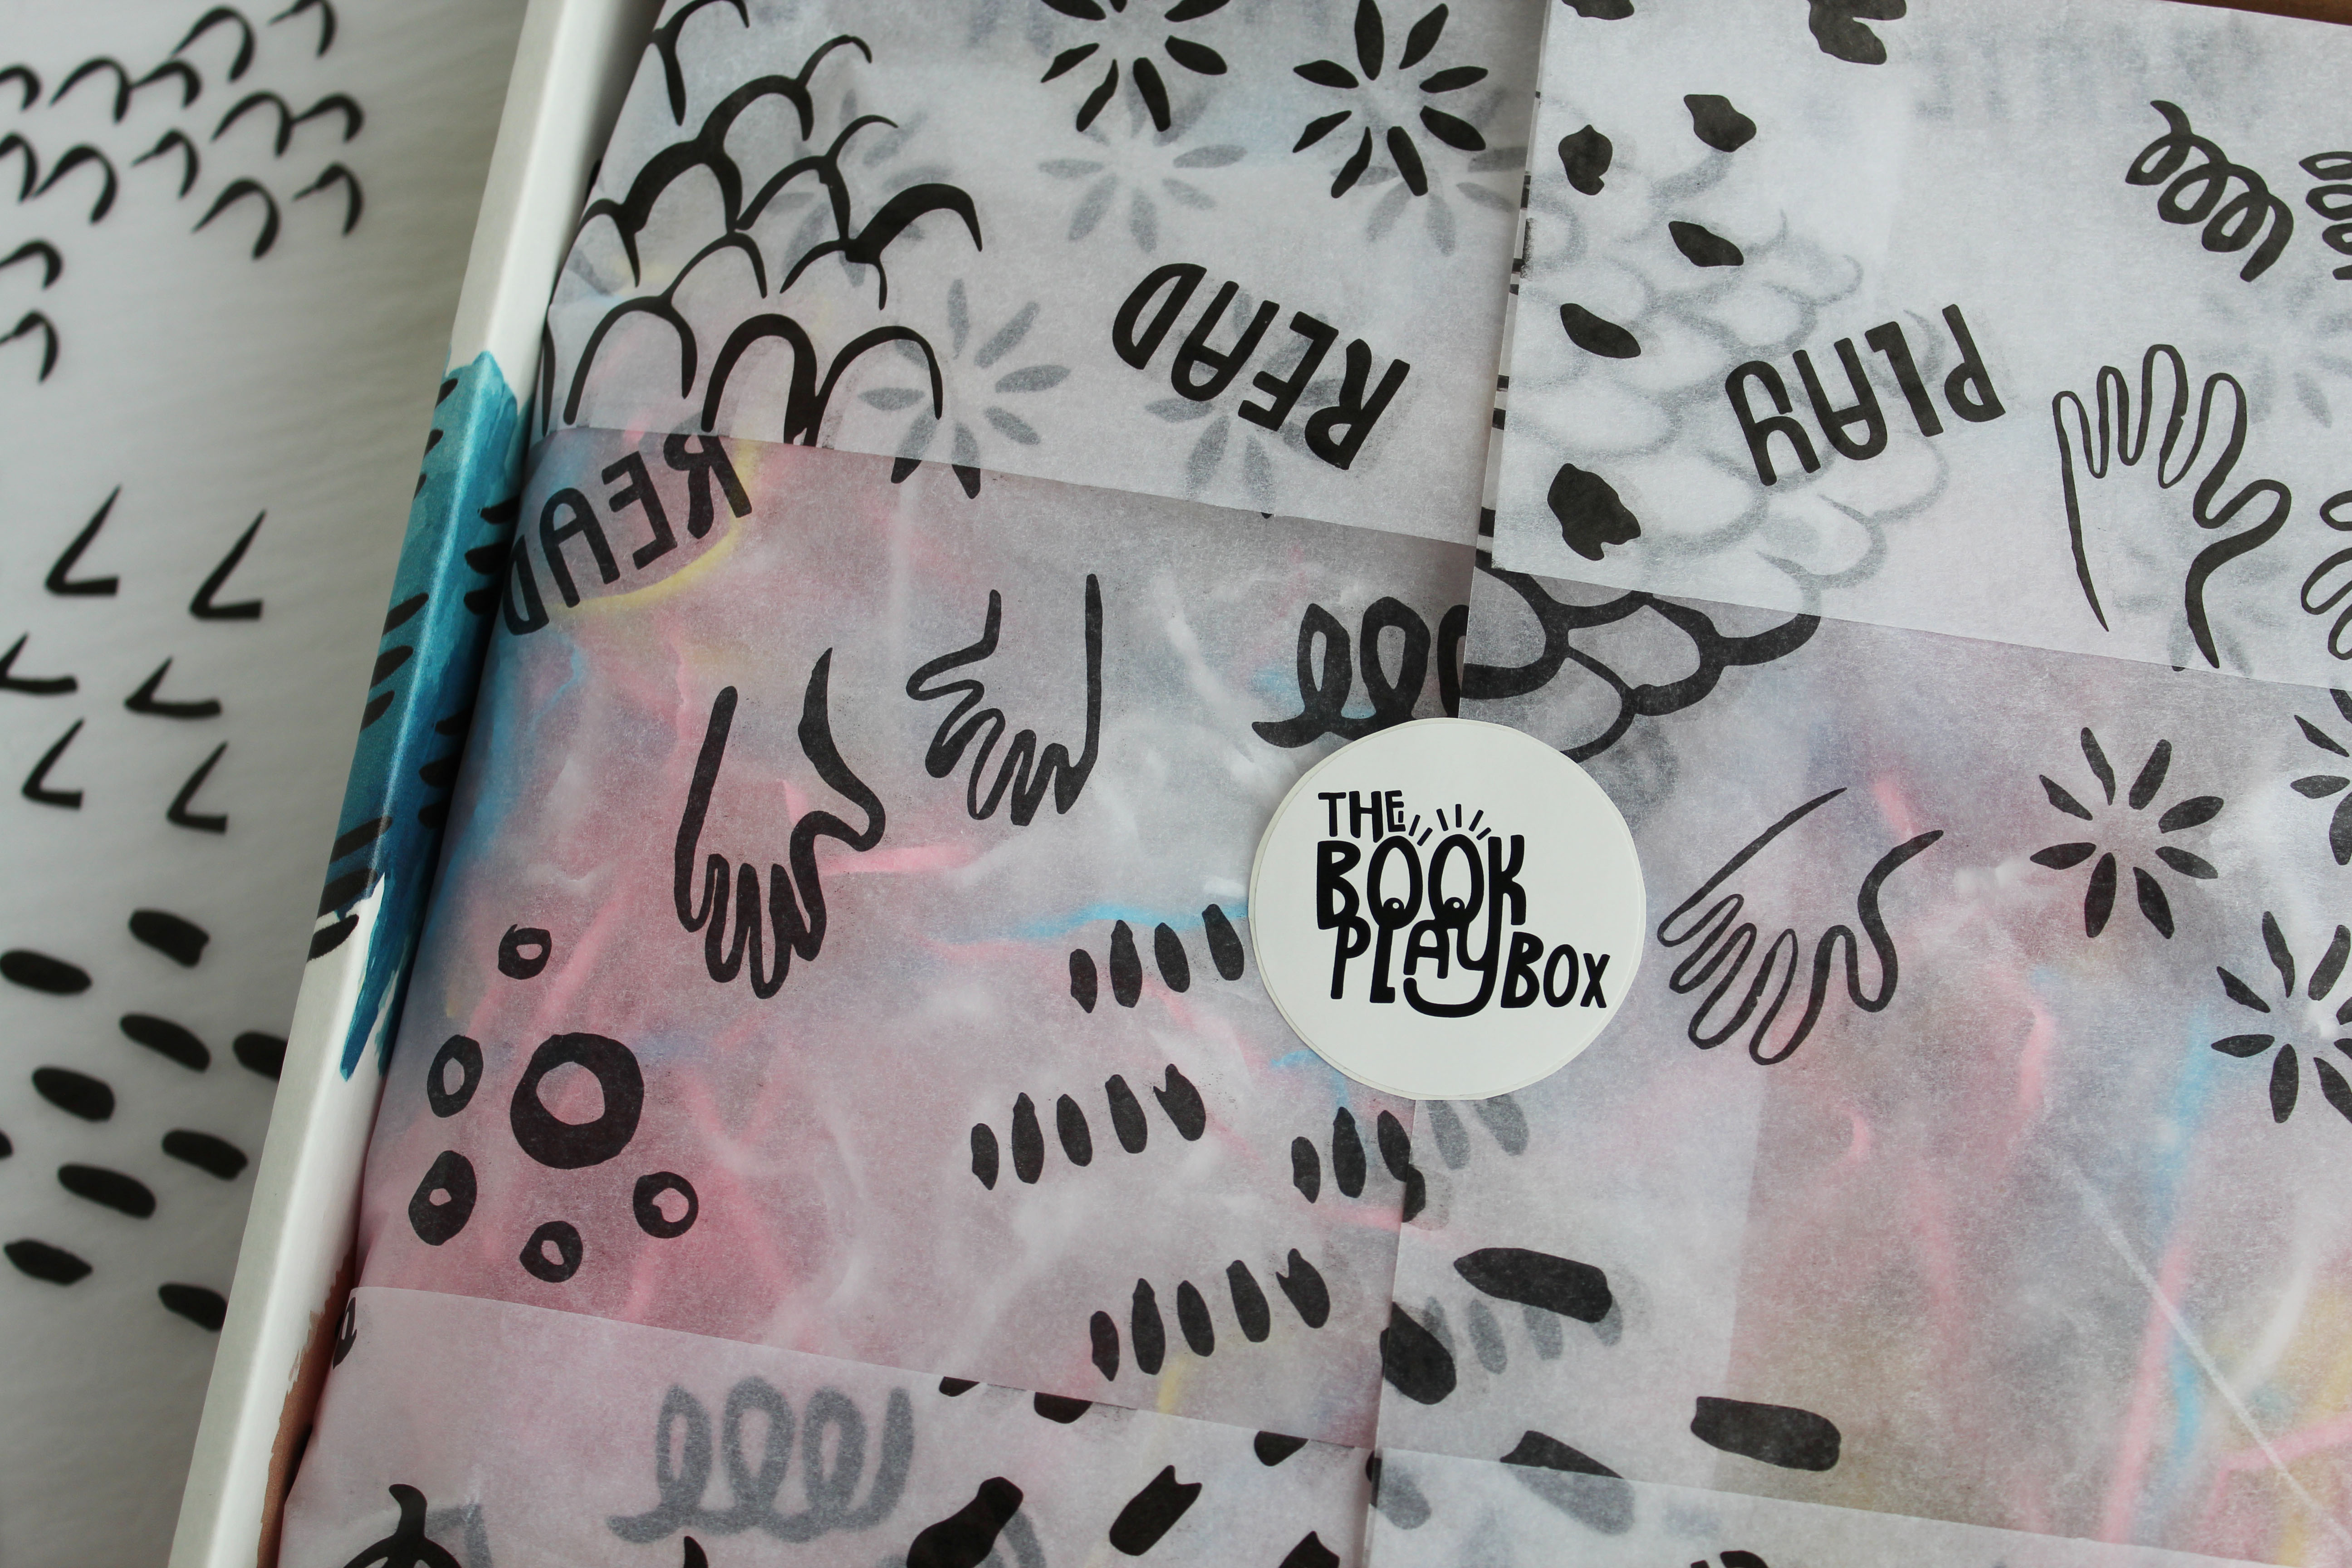 Close-up of The Book Playbox custom sticker